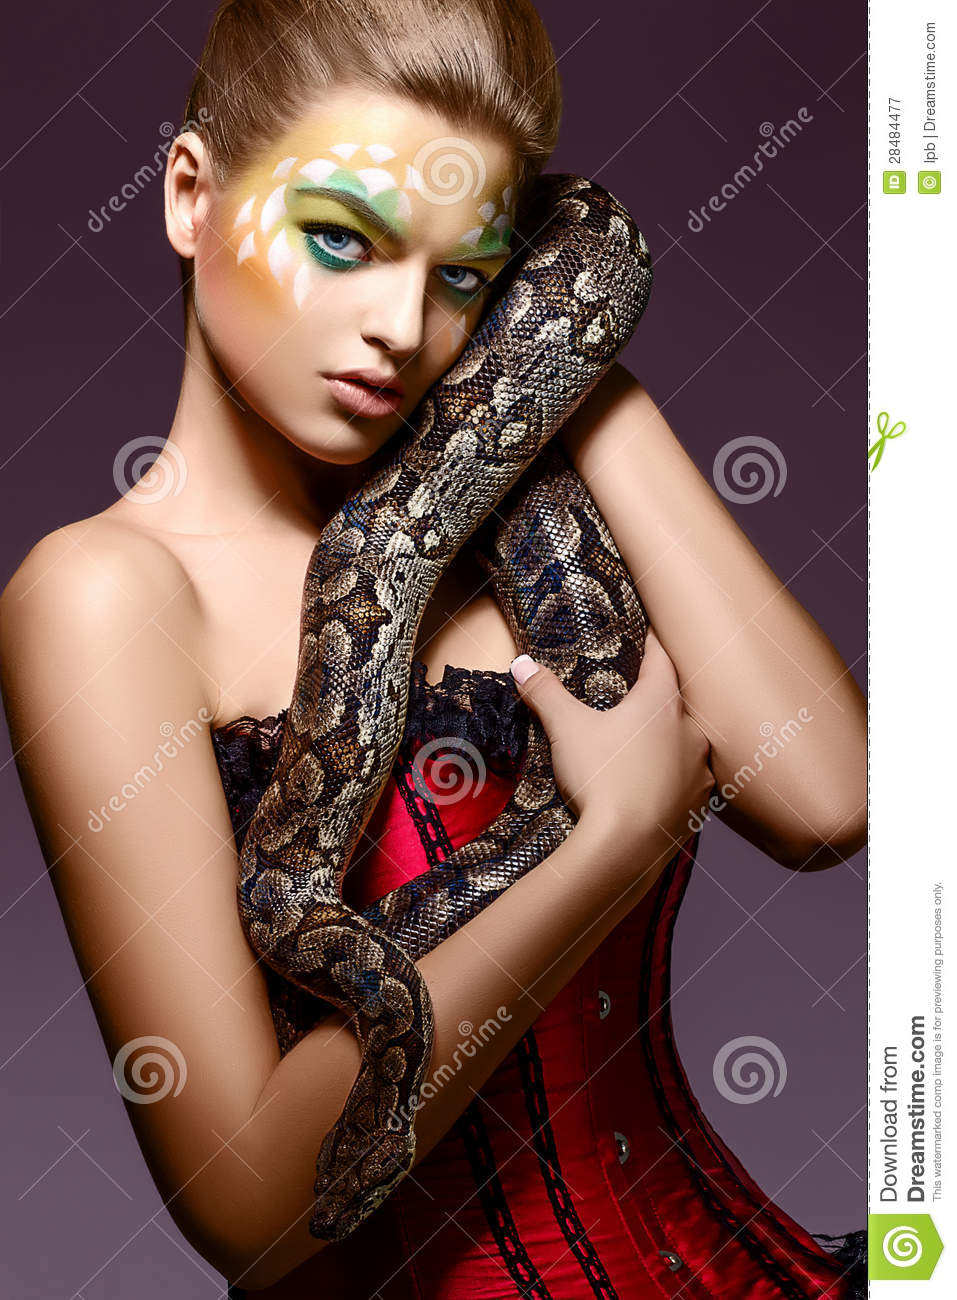 woman holding a snake nude